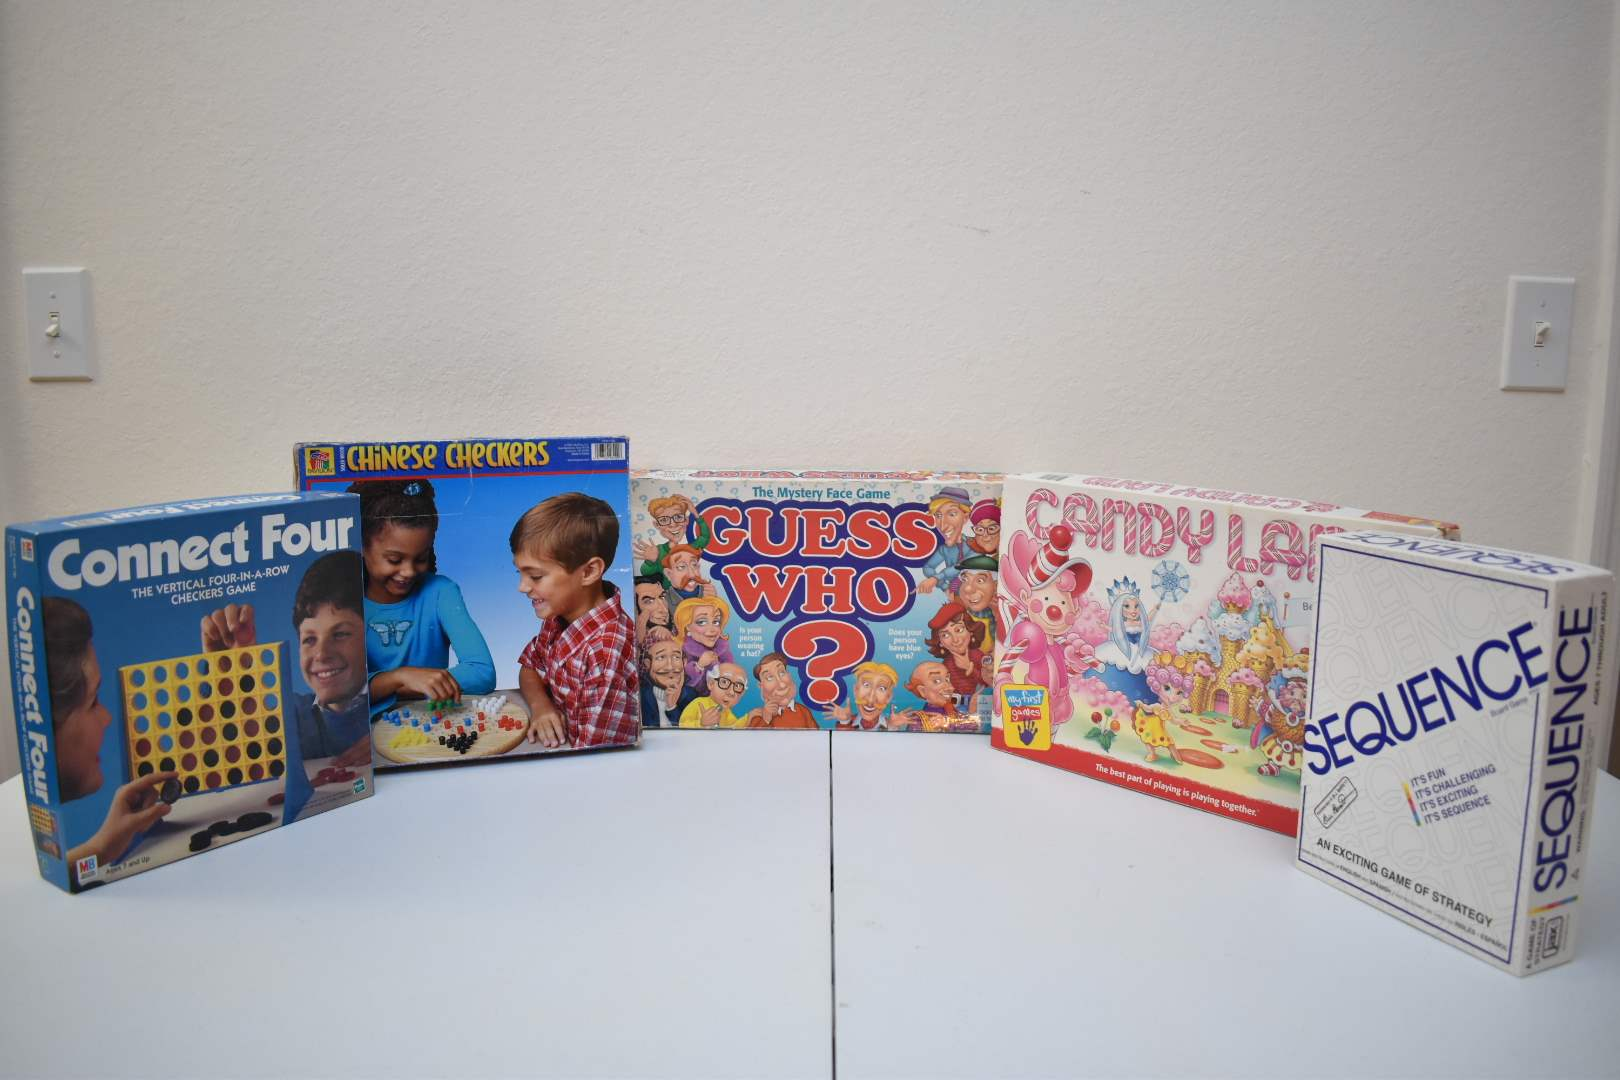 1990's Board Games: Candy Land, Guess Who, Sequence, Chinese Checkers, Connect Four